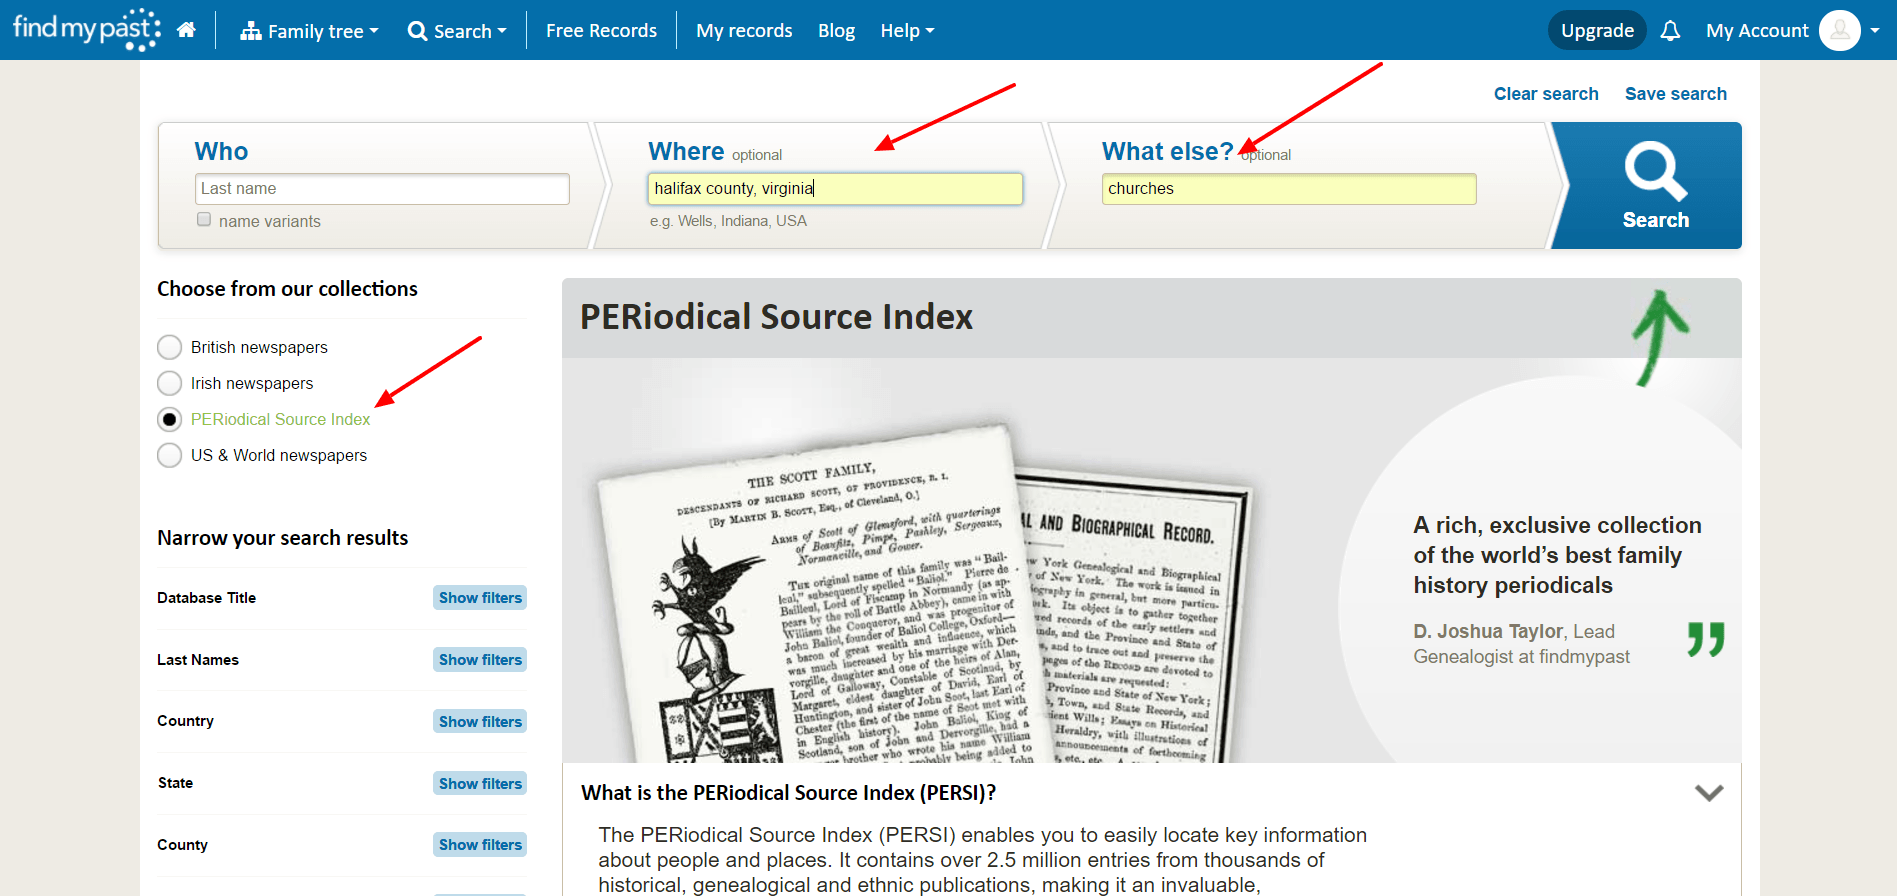 Finding genealogy articles using PERSI